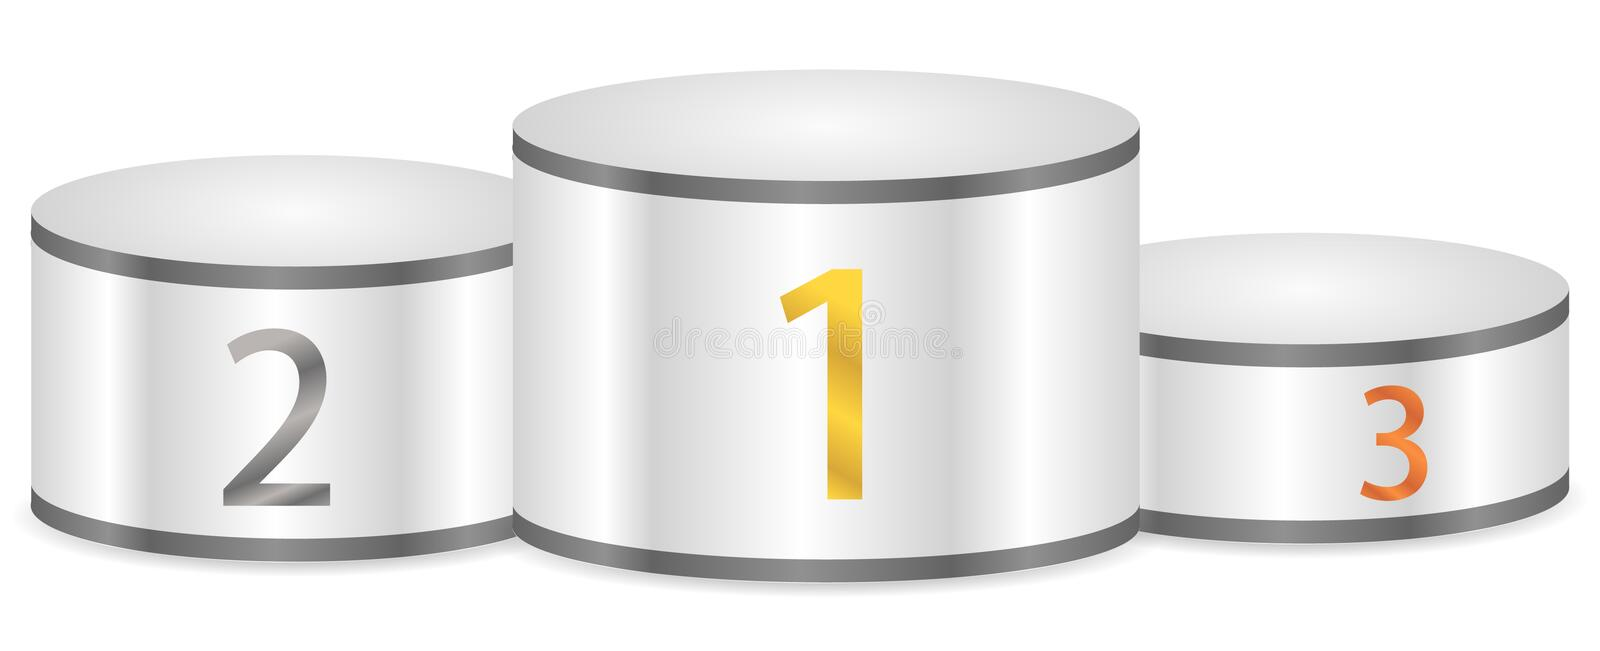 Winner podium royalty free illustration